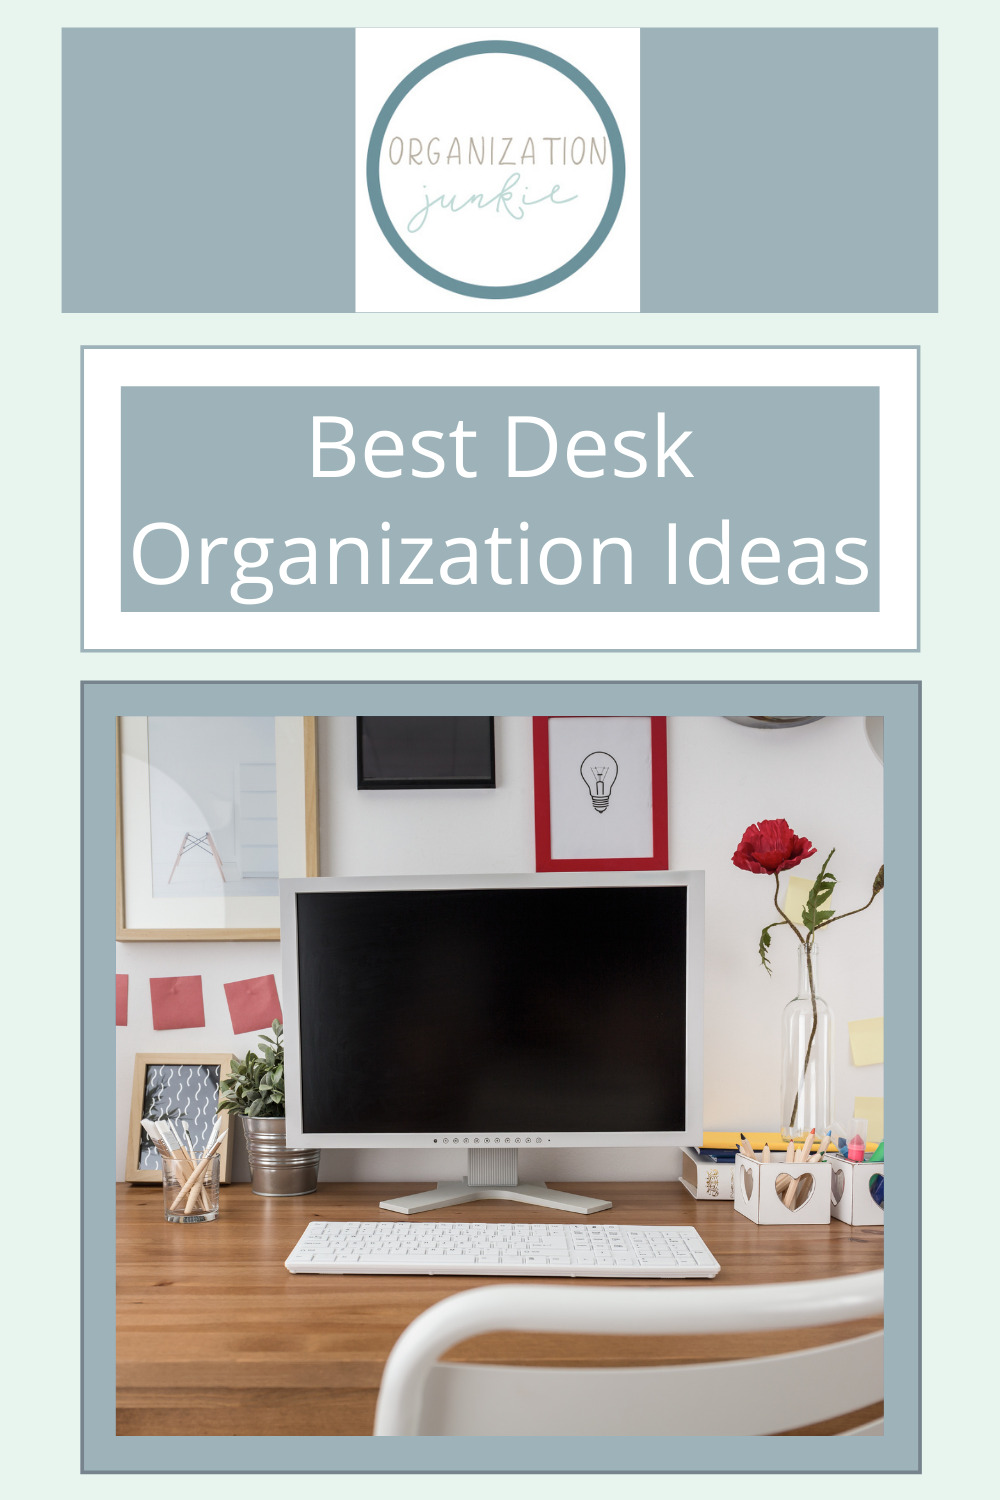 Organizationjunkie.com wants to help you clean and organize your desk. No more clutter. A place for everything and everything in its place. Keep reading for some excellent but easy desk organization ideas.